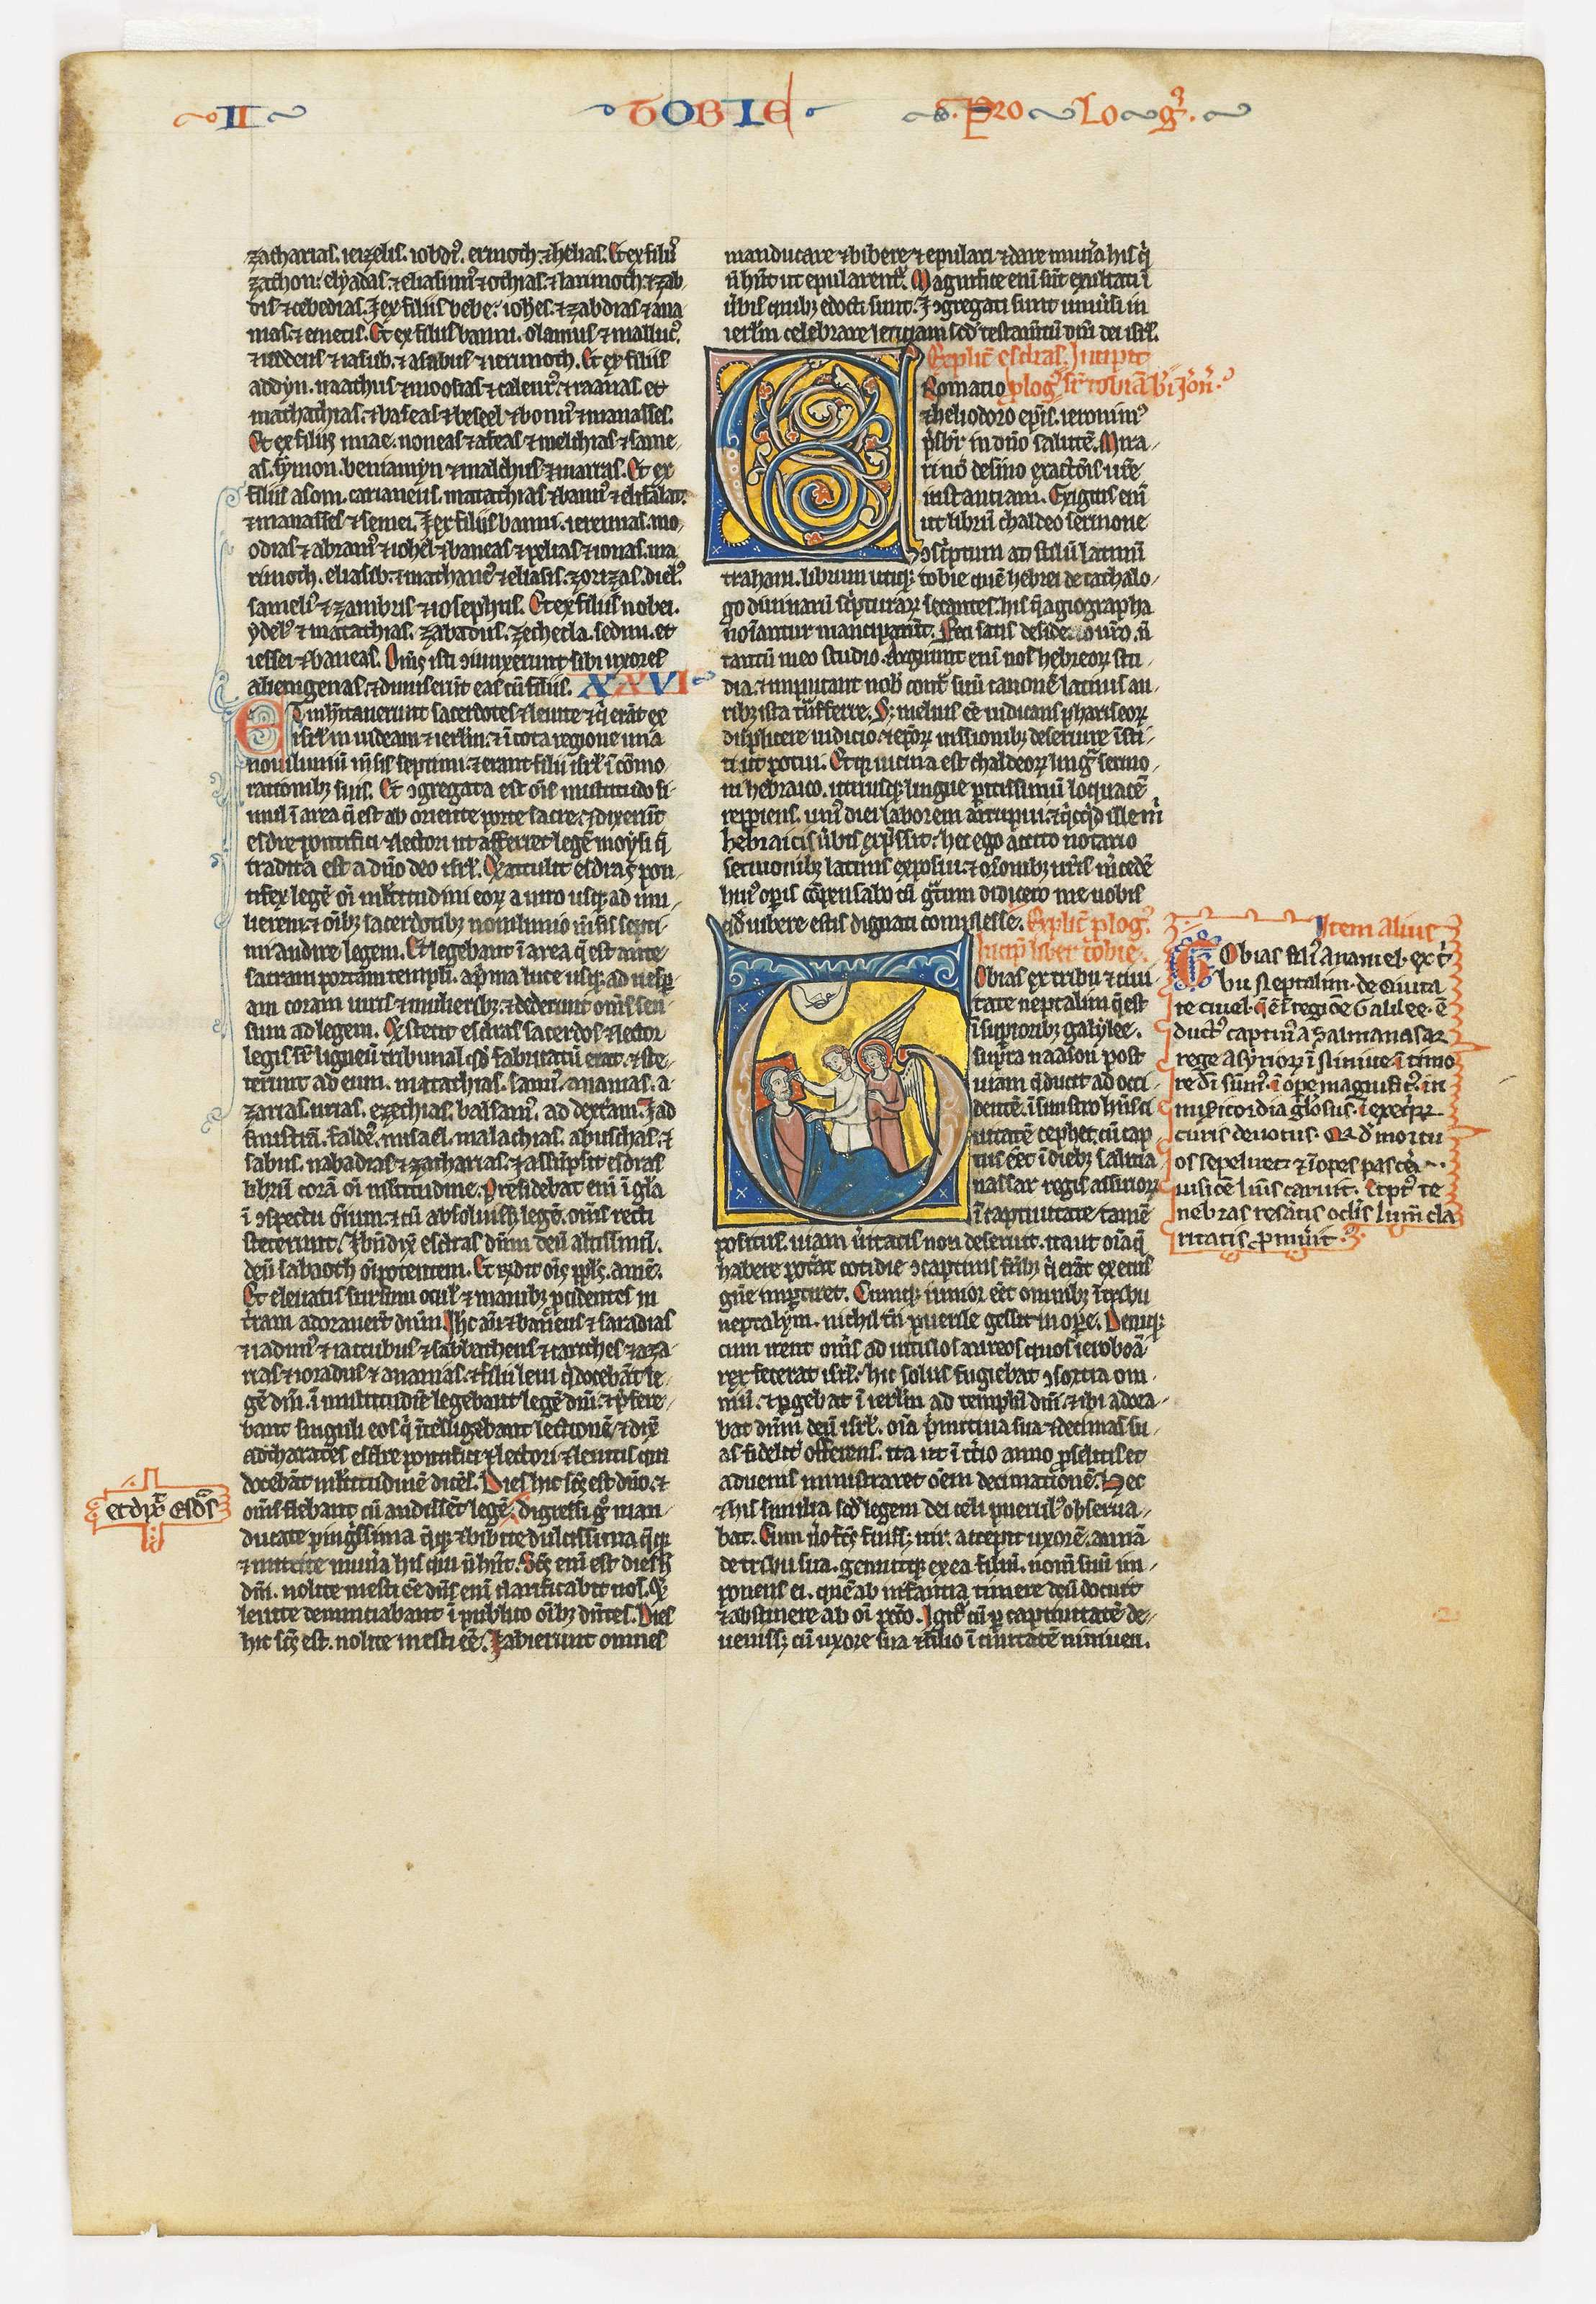 a leaf from the Chudleigh Bible, in Latin, illuminated manuscript on vellum - north-eastern France, c.1220-30